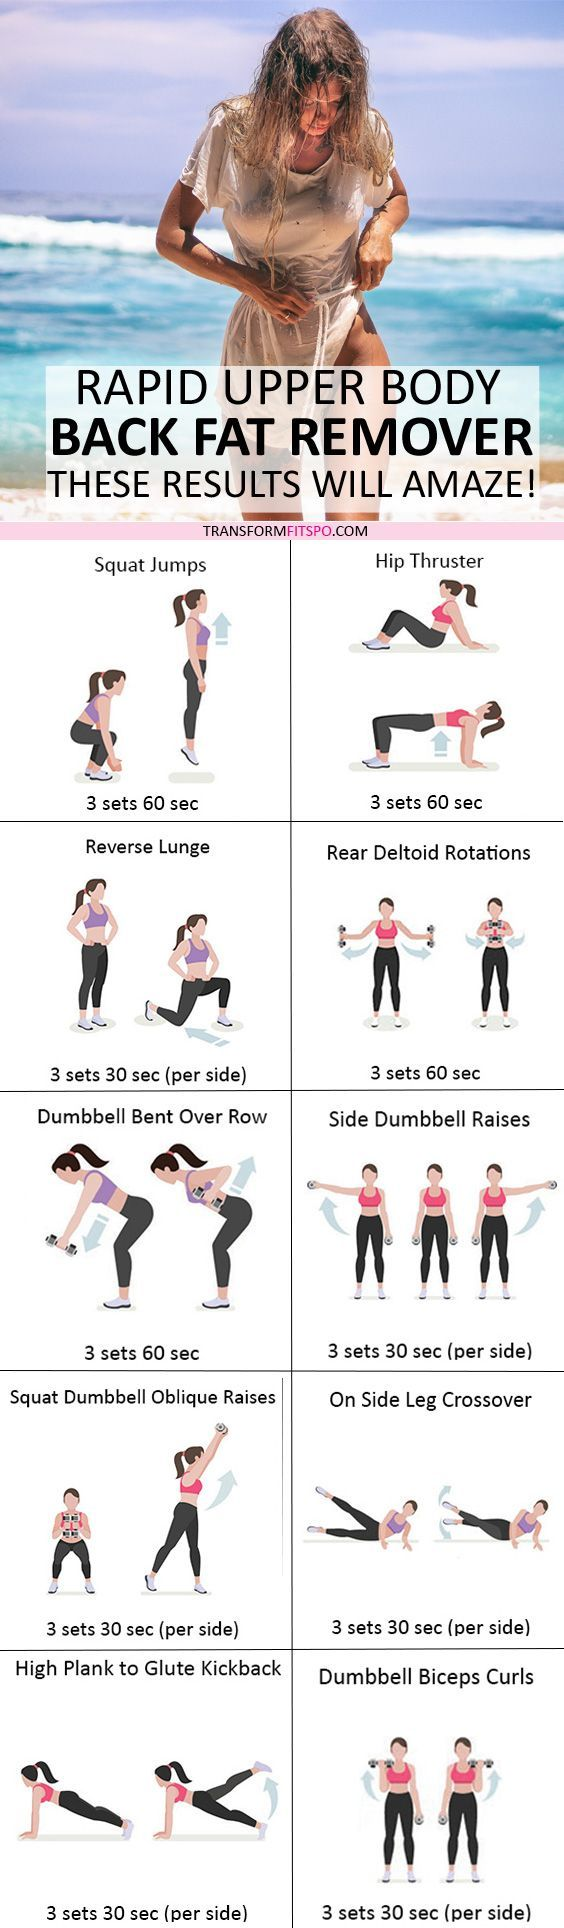 Burner your back and upper body with this amazing workout!